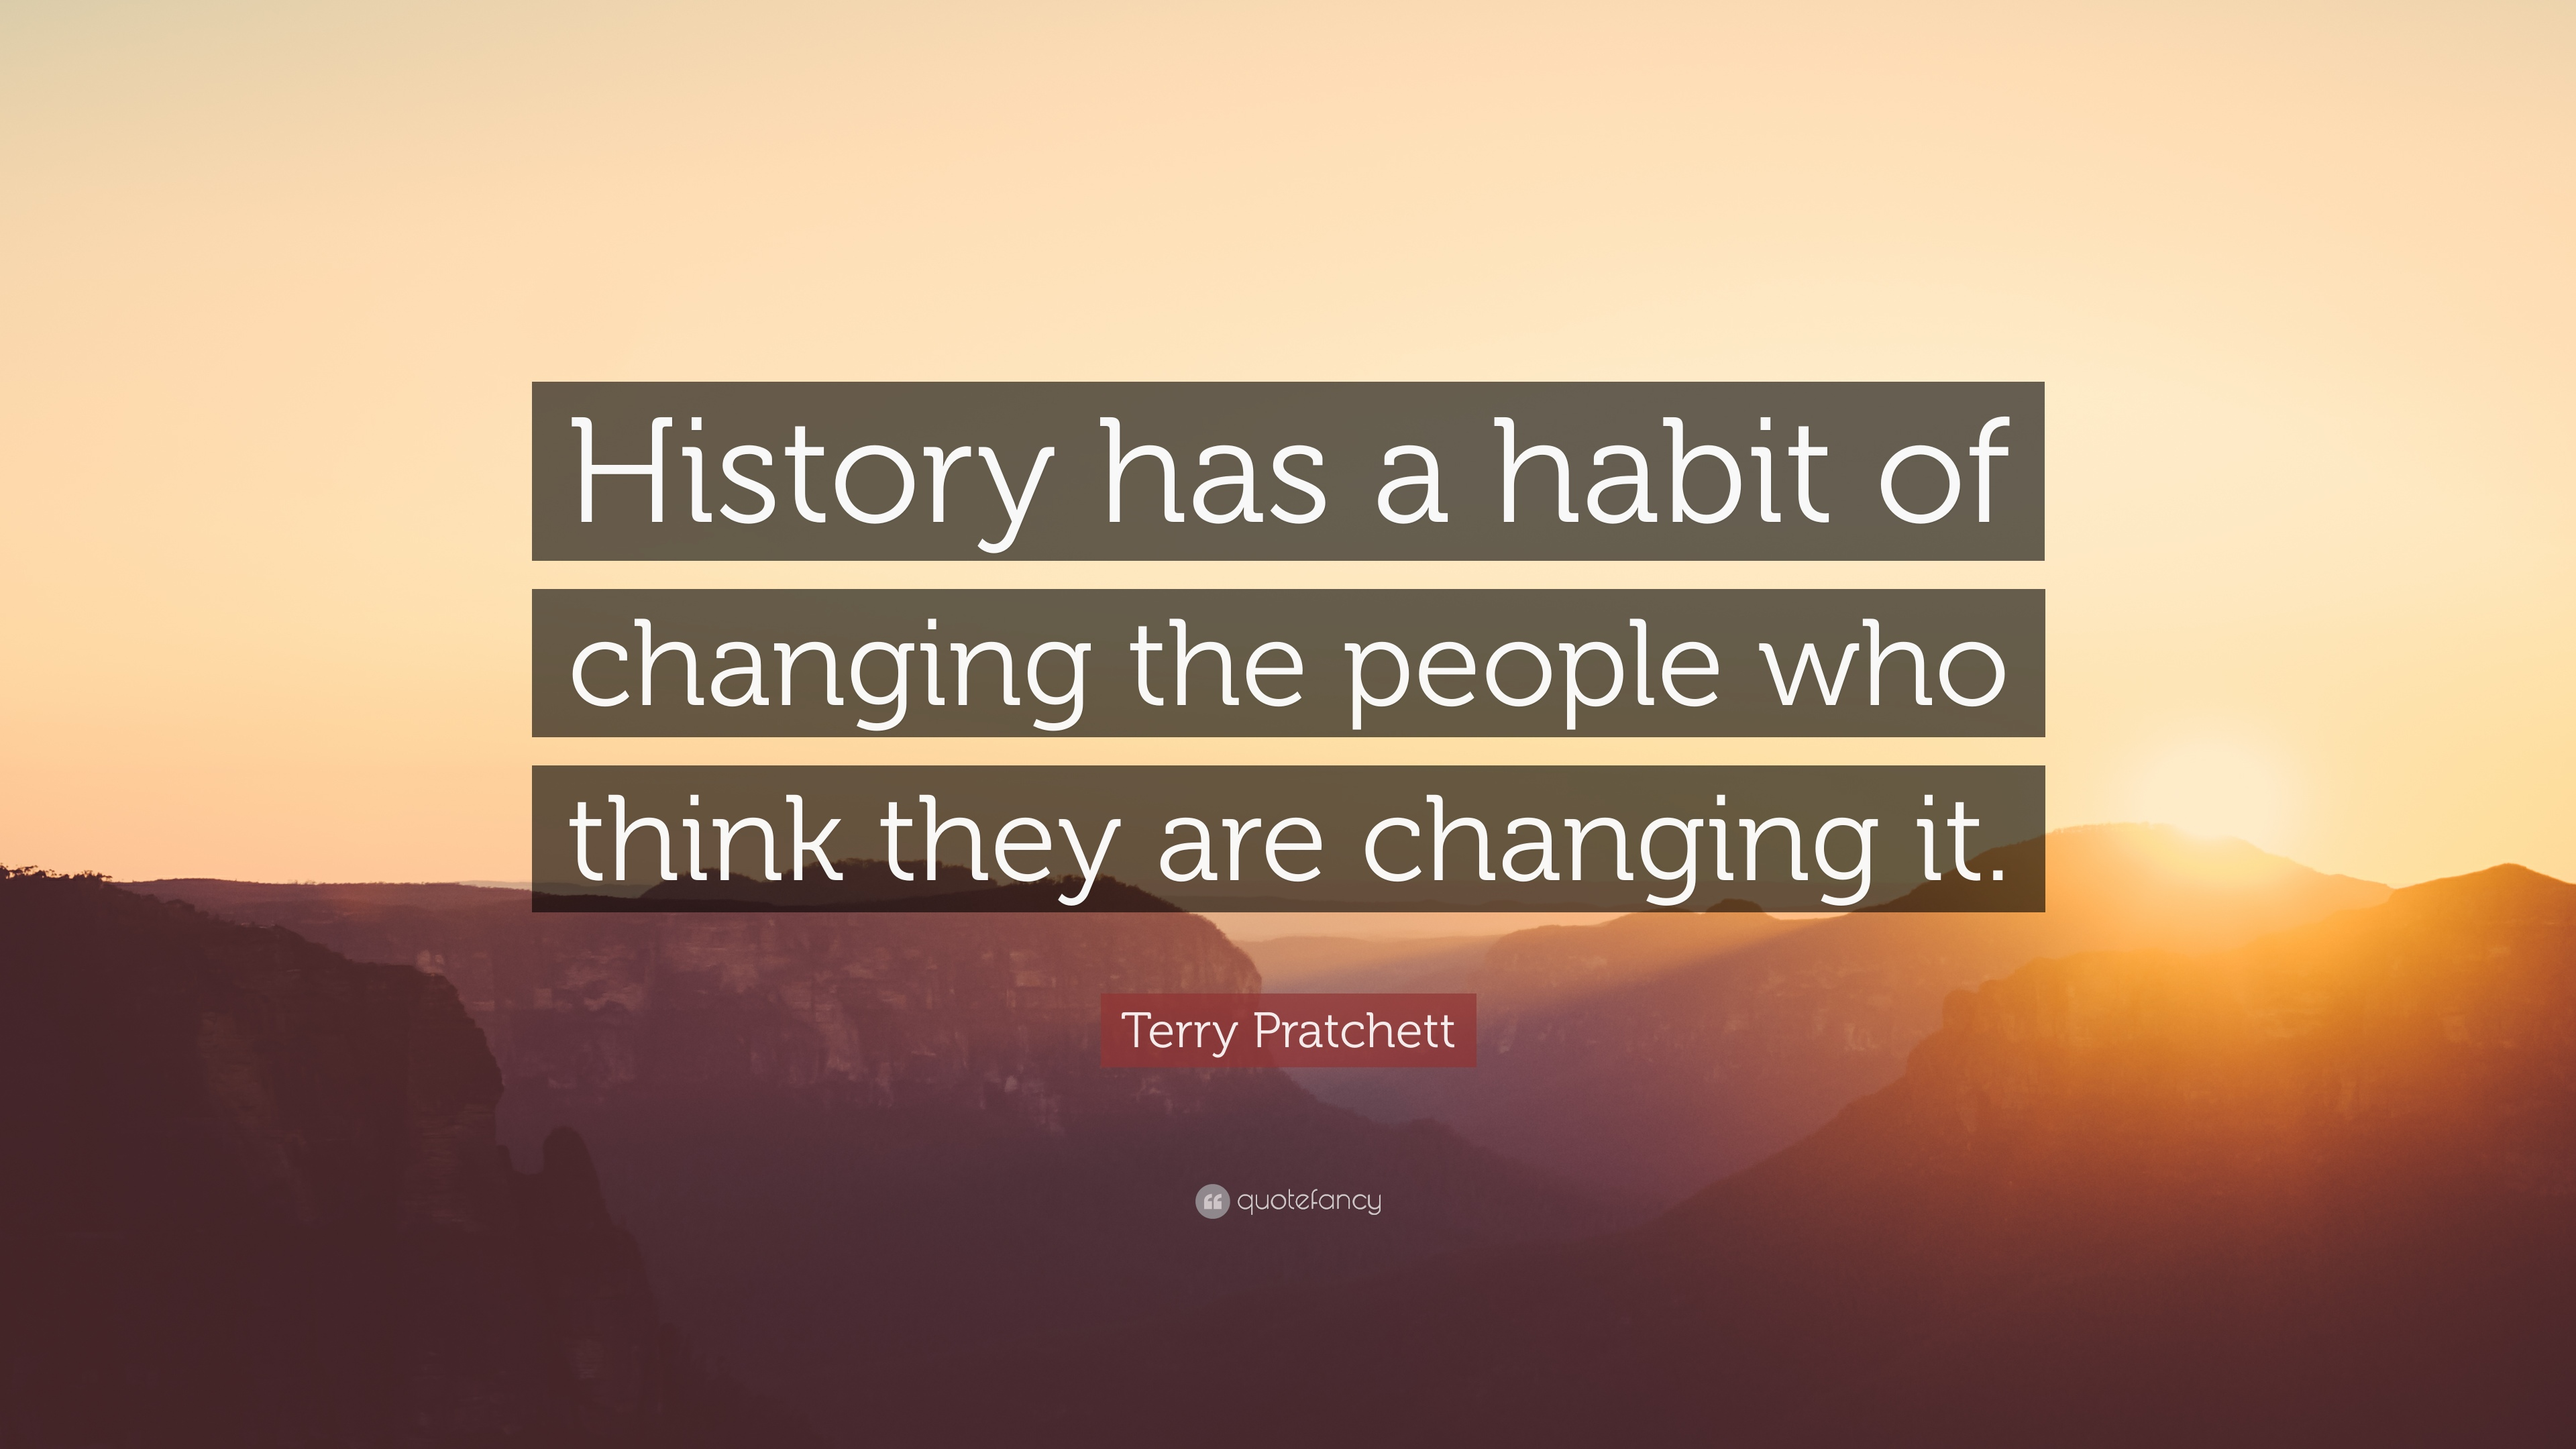 Terry pratchett quote history has a habit of changing the people who think they